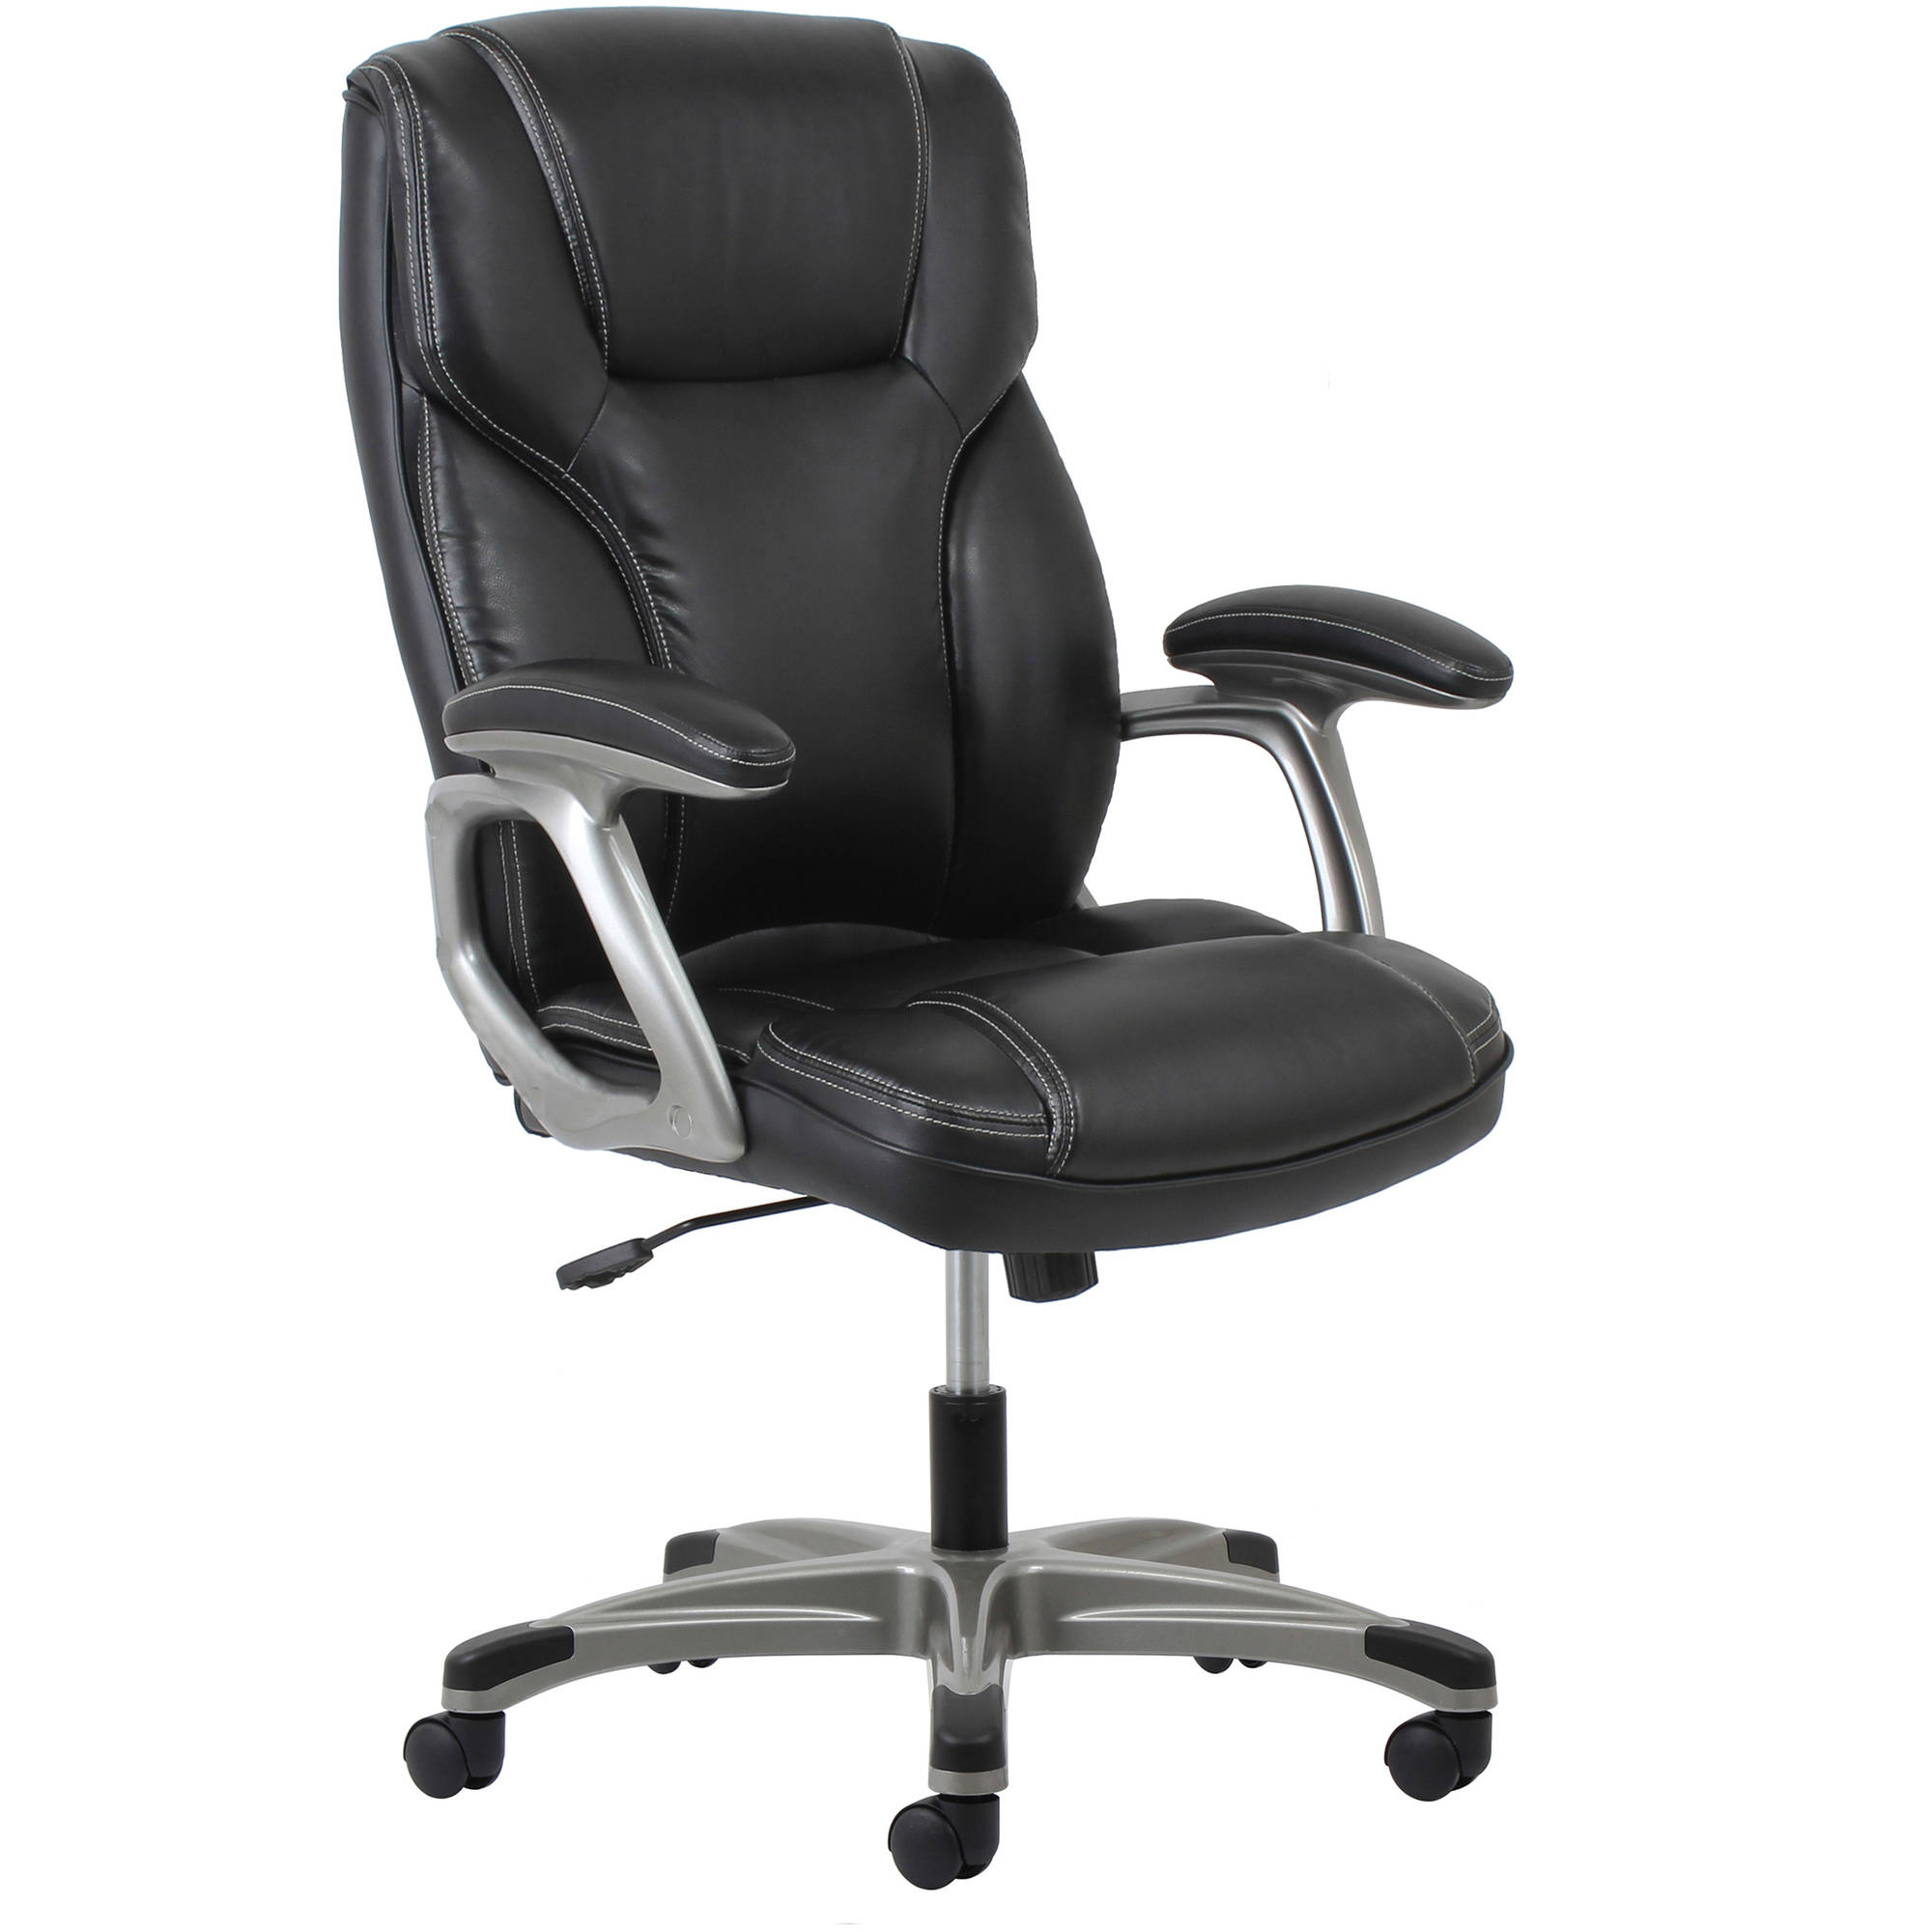 essentialsofm ergonomic high-back leather executive office